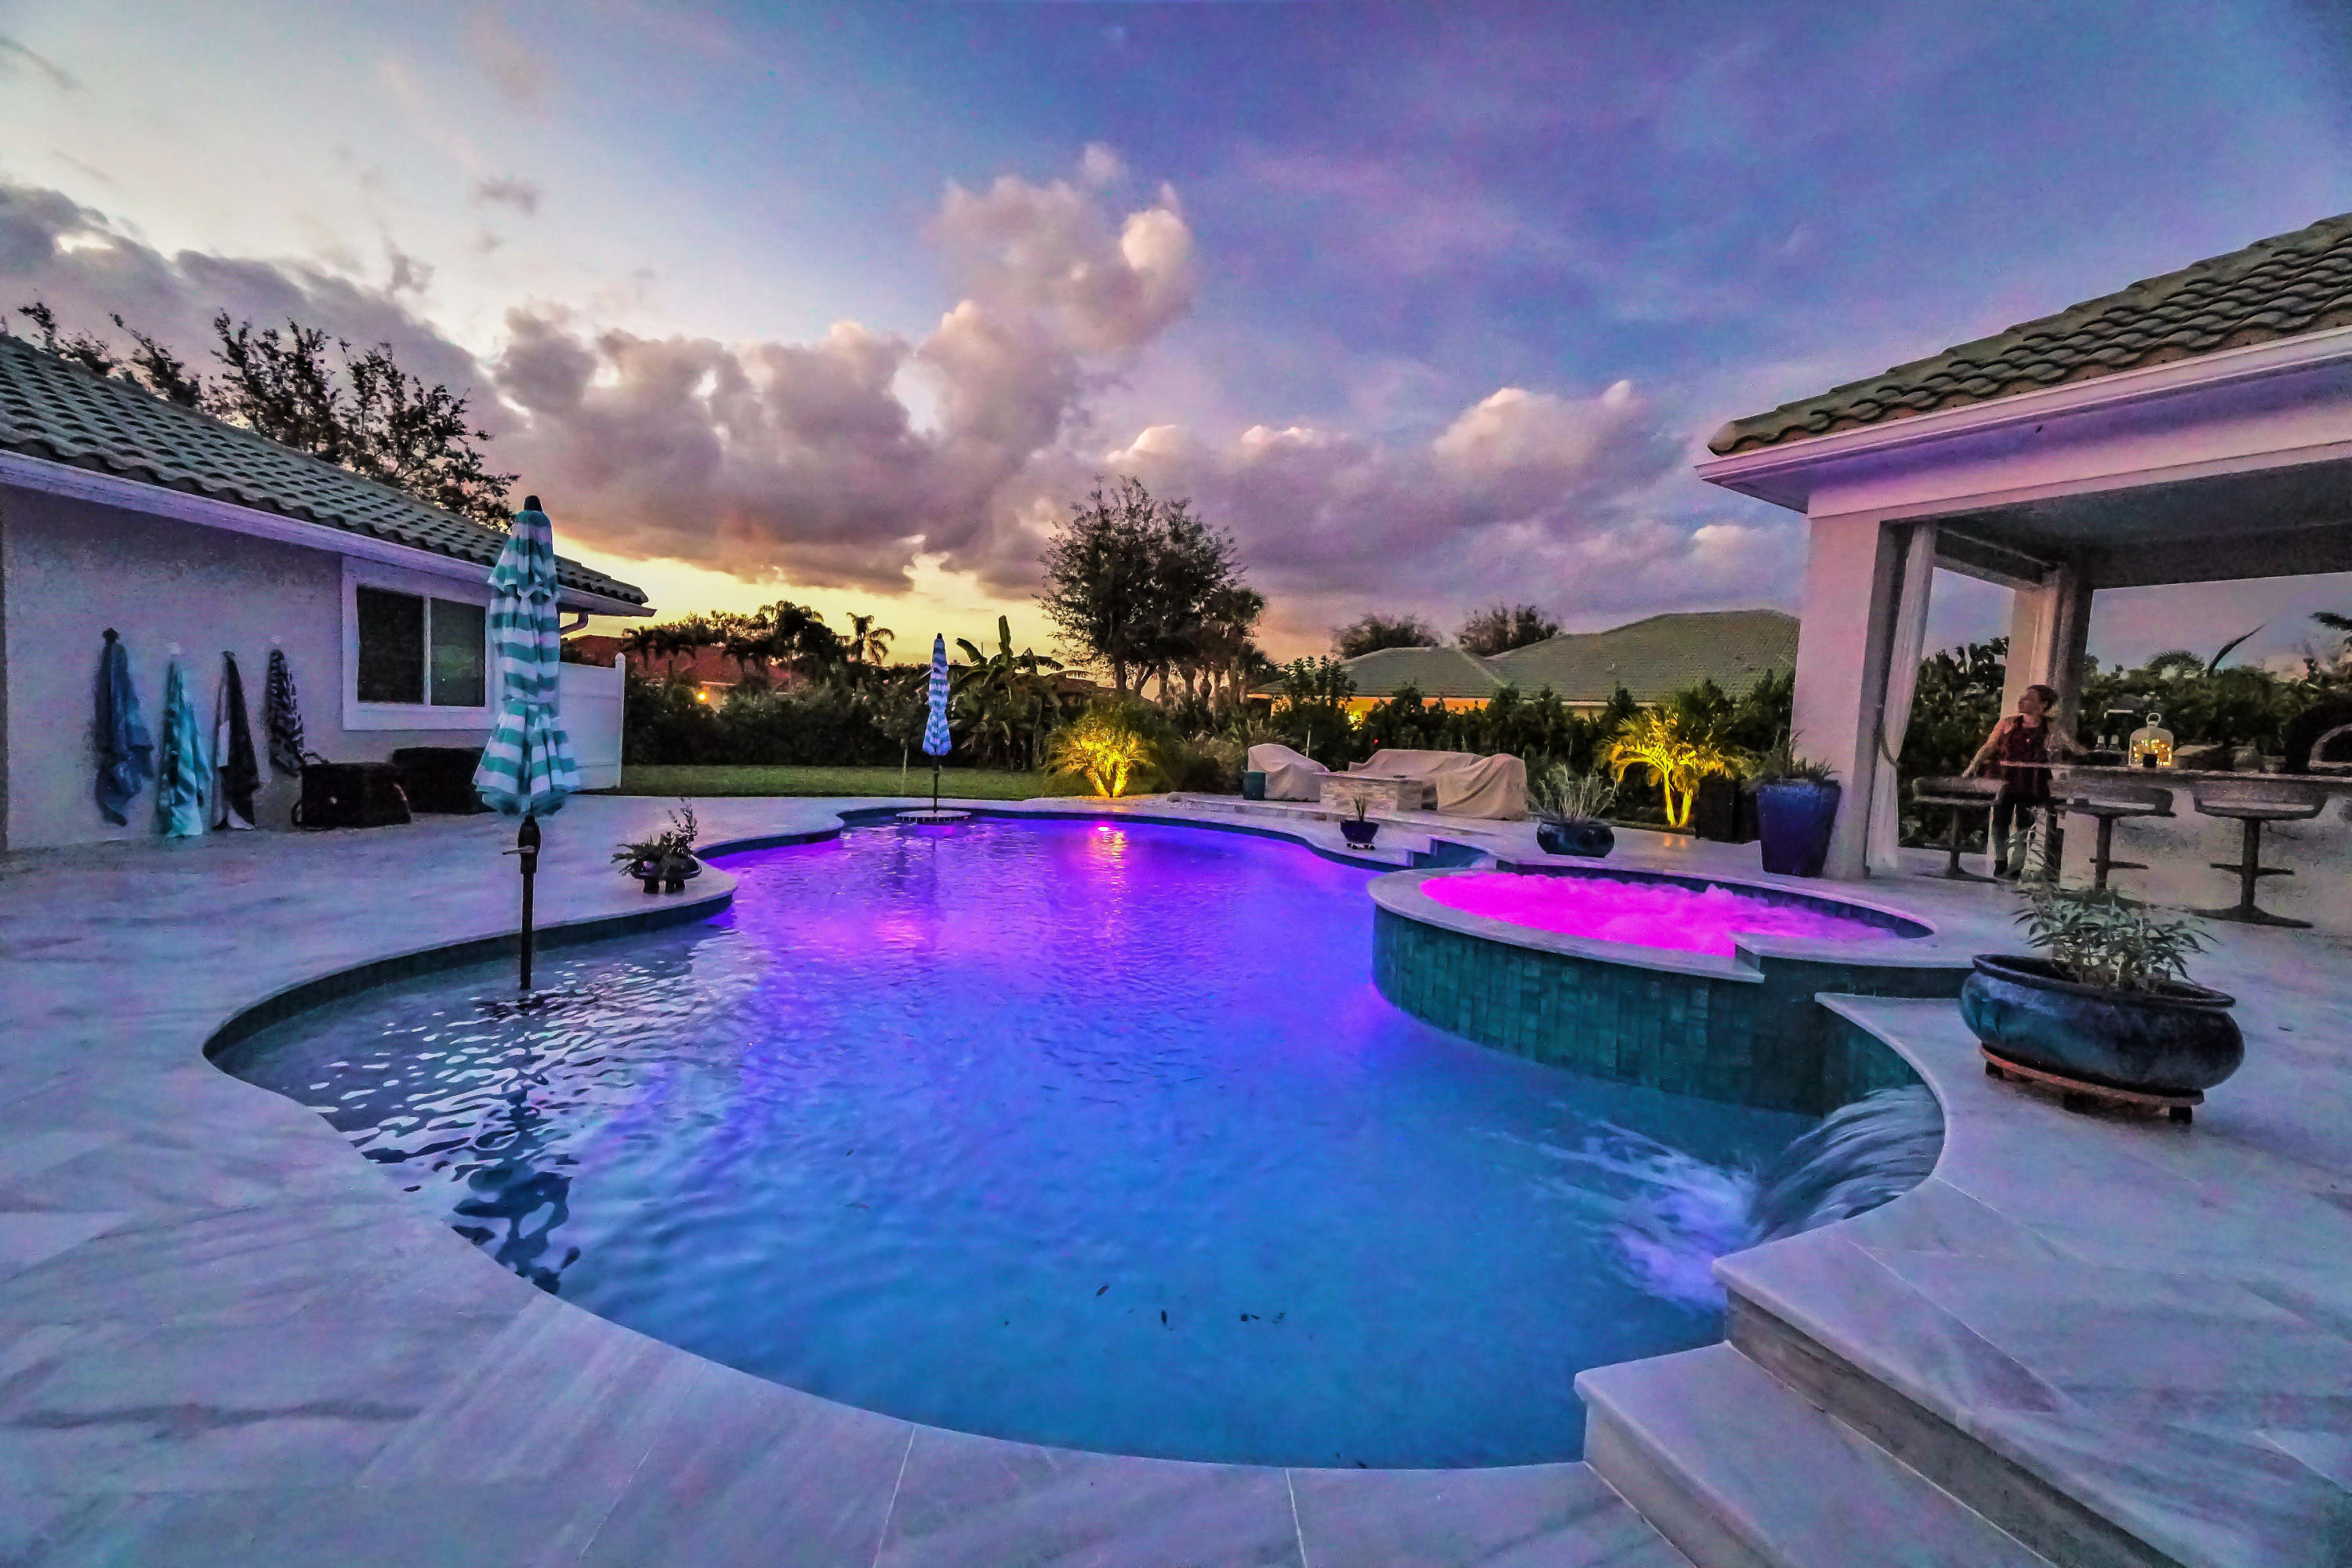 15925 Springhill Court, Wellington, Florida 33414, 5 Bedrooms Bedrooms, ,3 BathroomsBathrooms,Single Family,For Rent,MEADOW WOOD,Springhill,1,RX-10606919